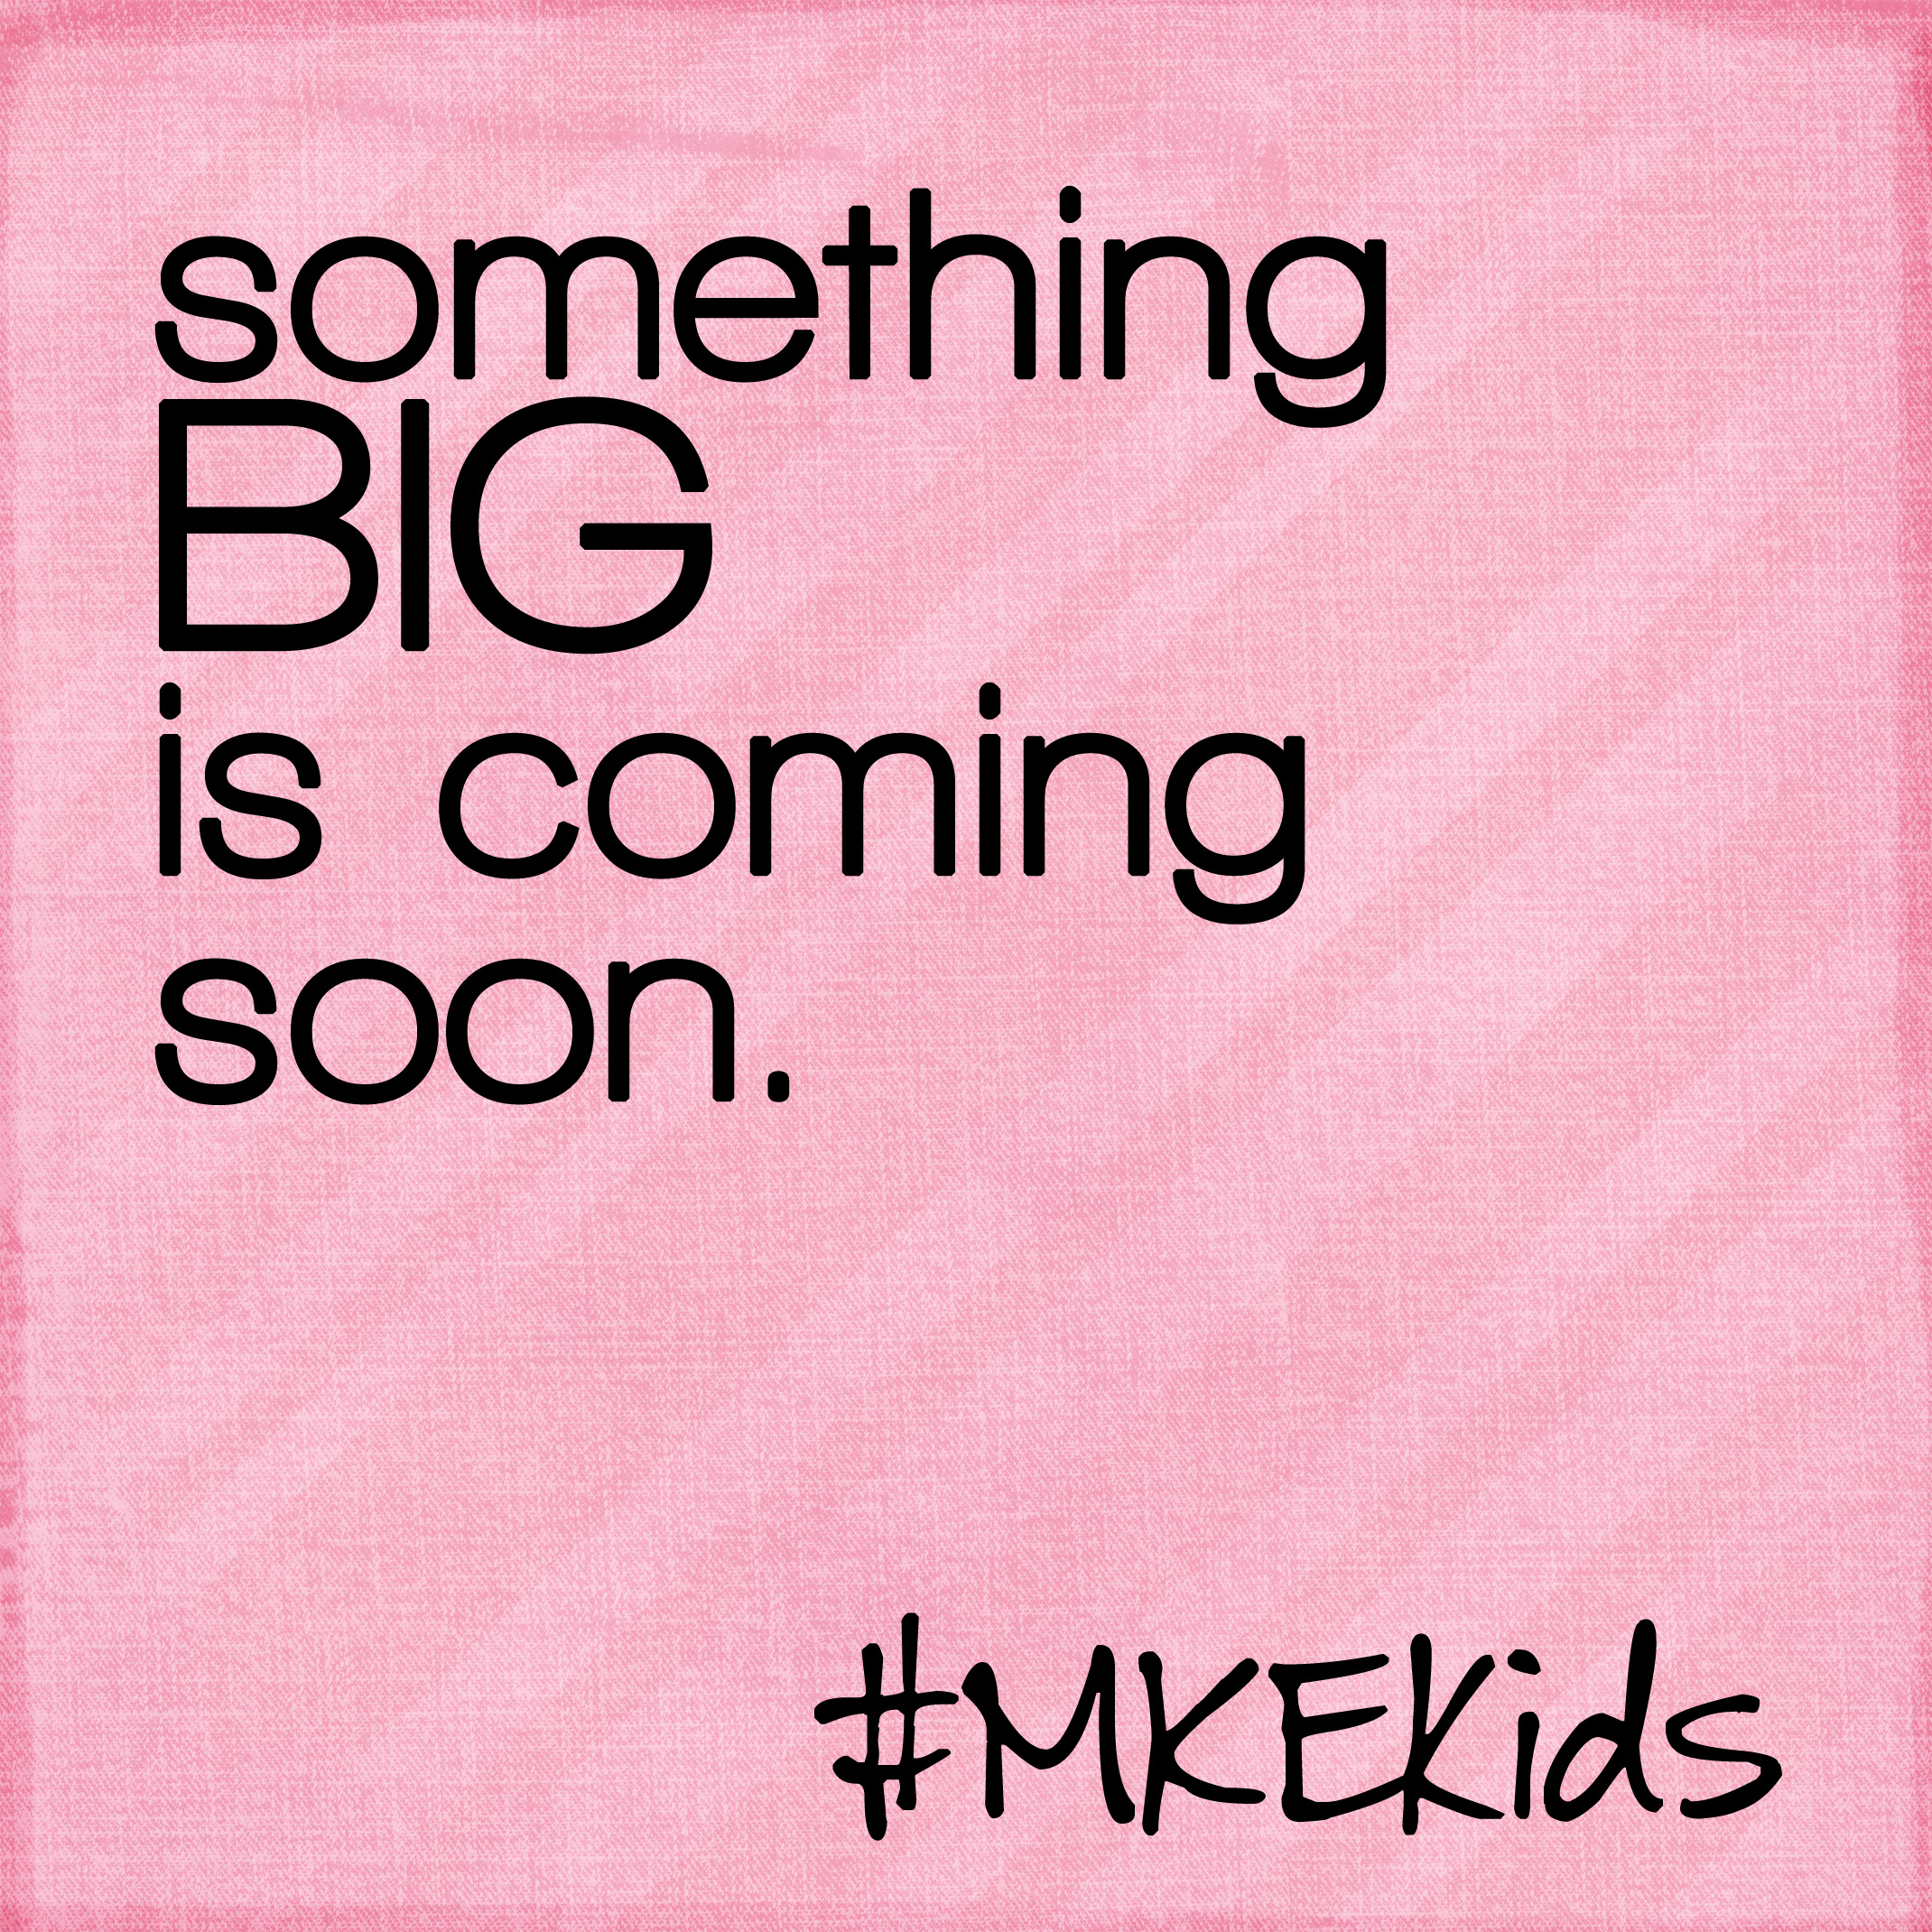 Click on picture to go to #MKEkids